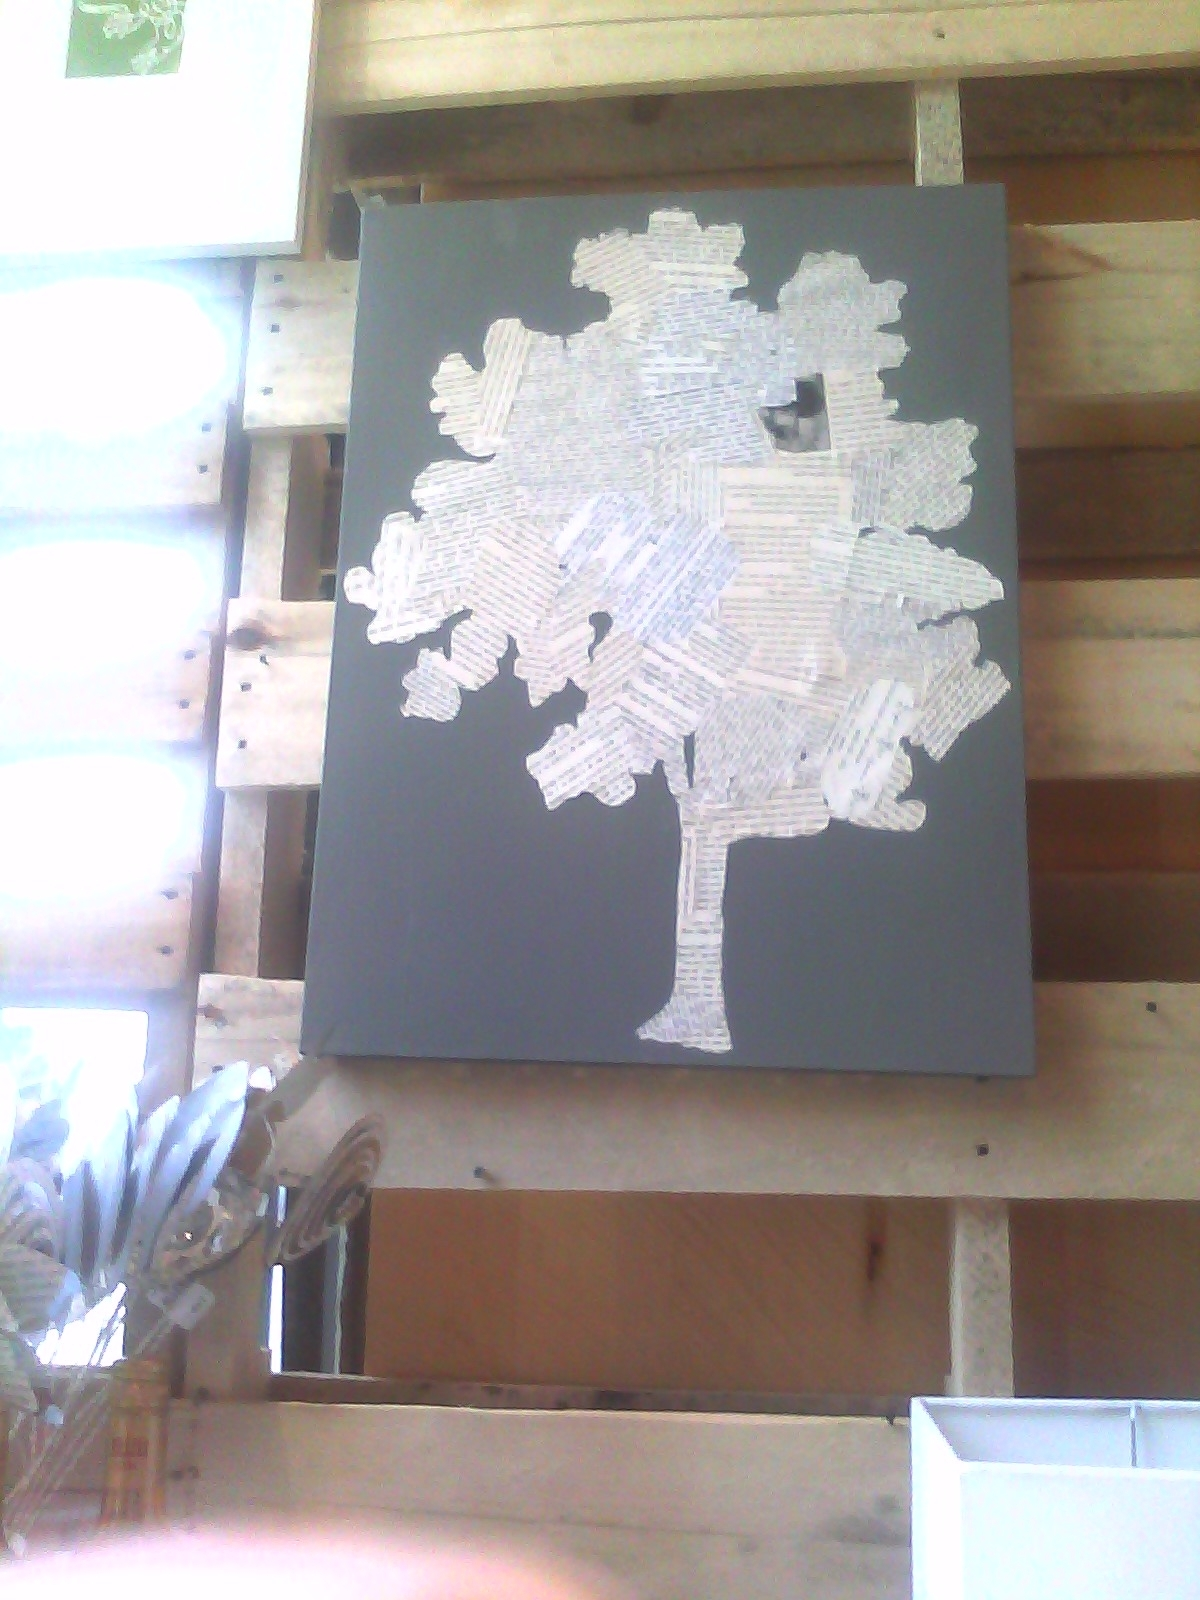 Inside-Out Design: West Elm Wall Art- Copied! within Preferred West Elm Wall Art